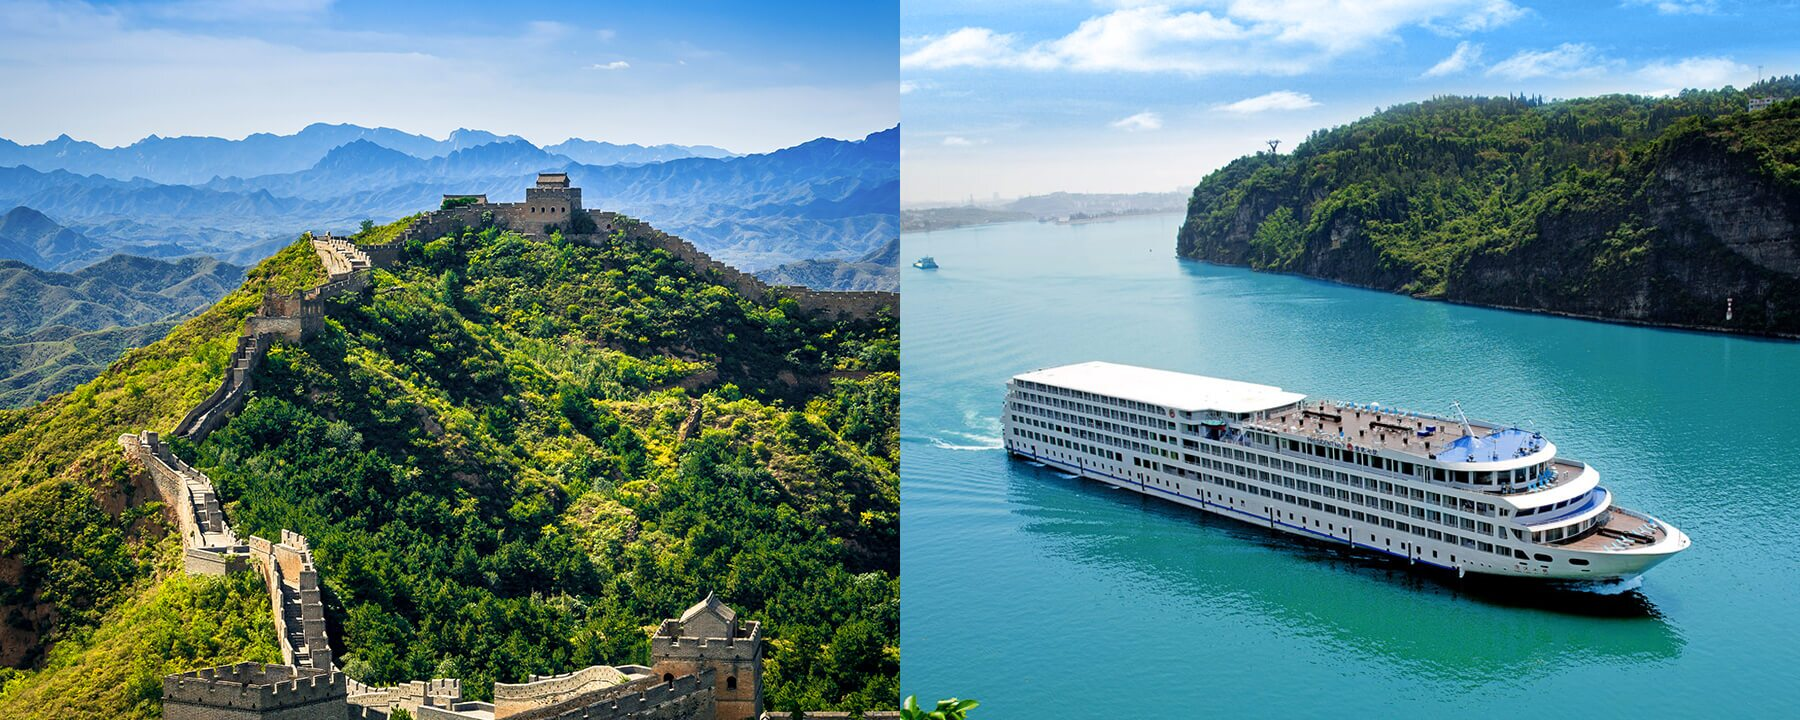 Beijing Great Wall and Yangtze Cruise Tour